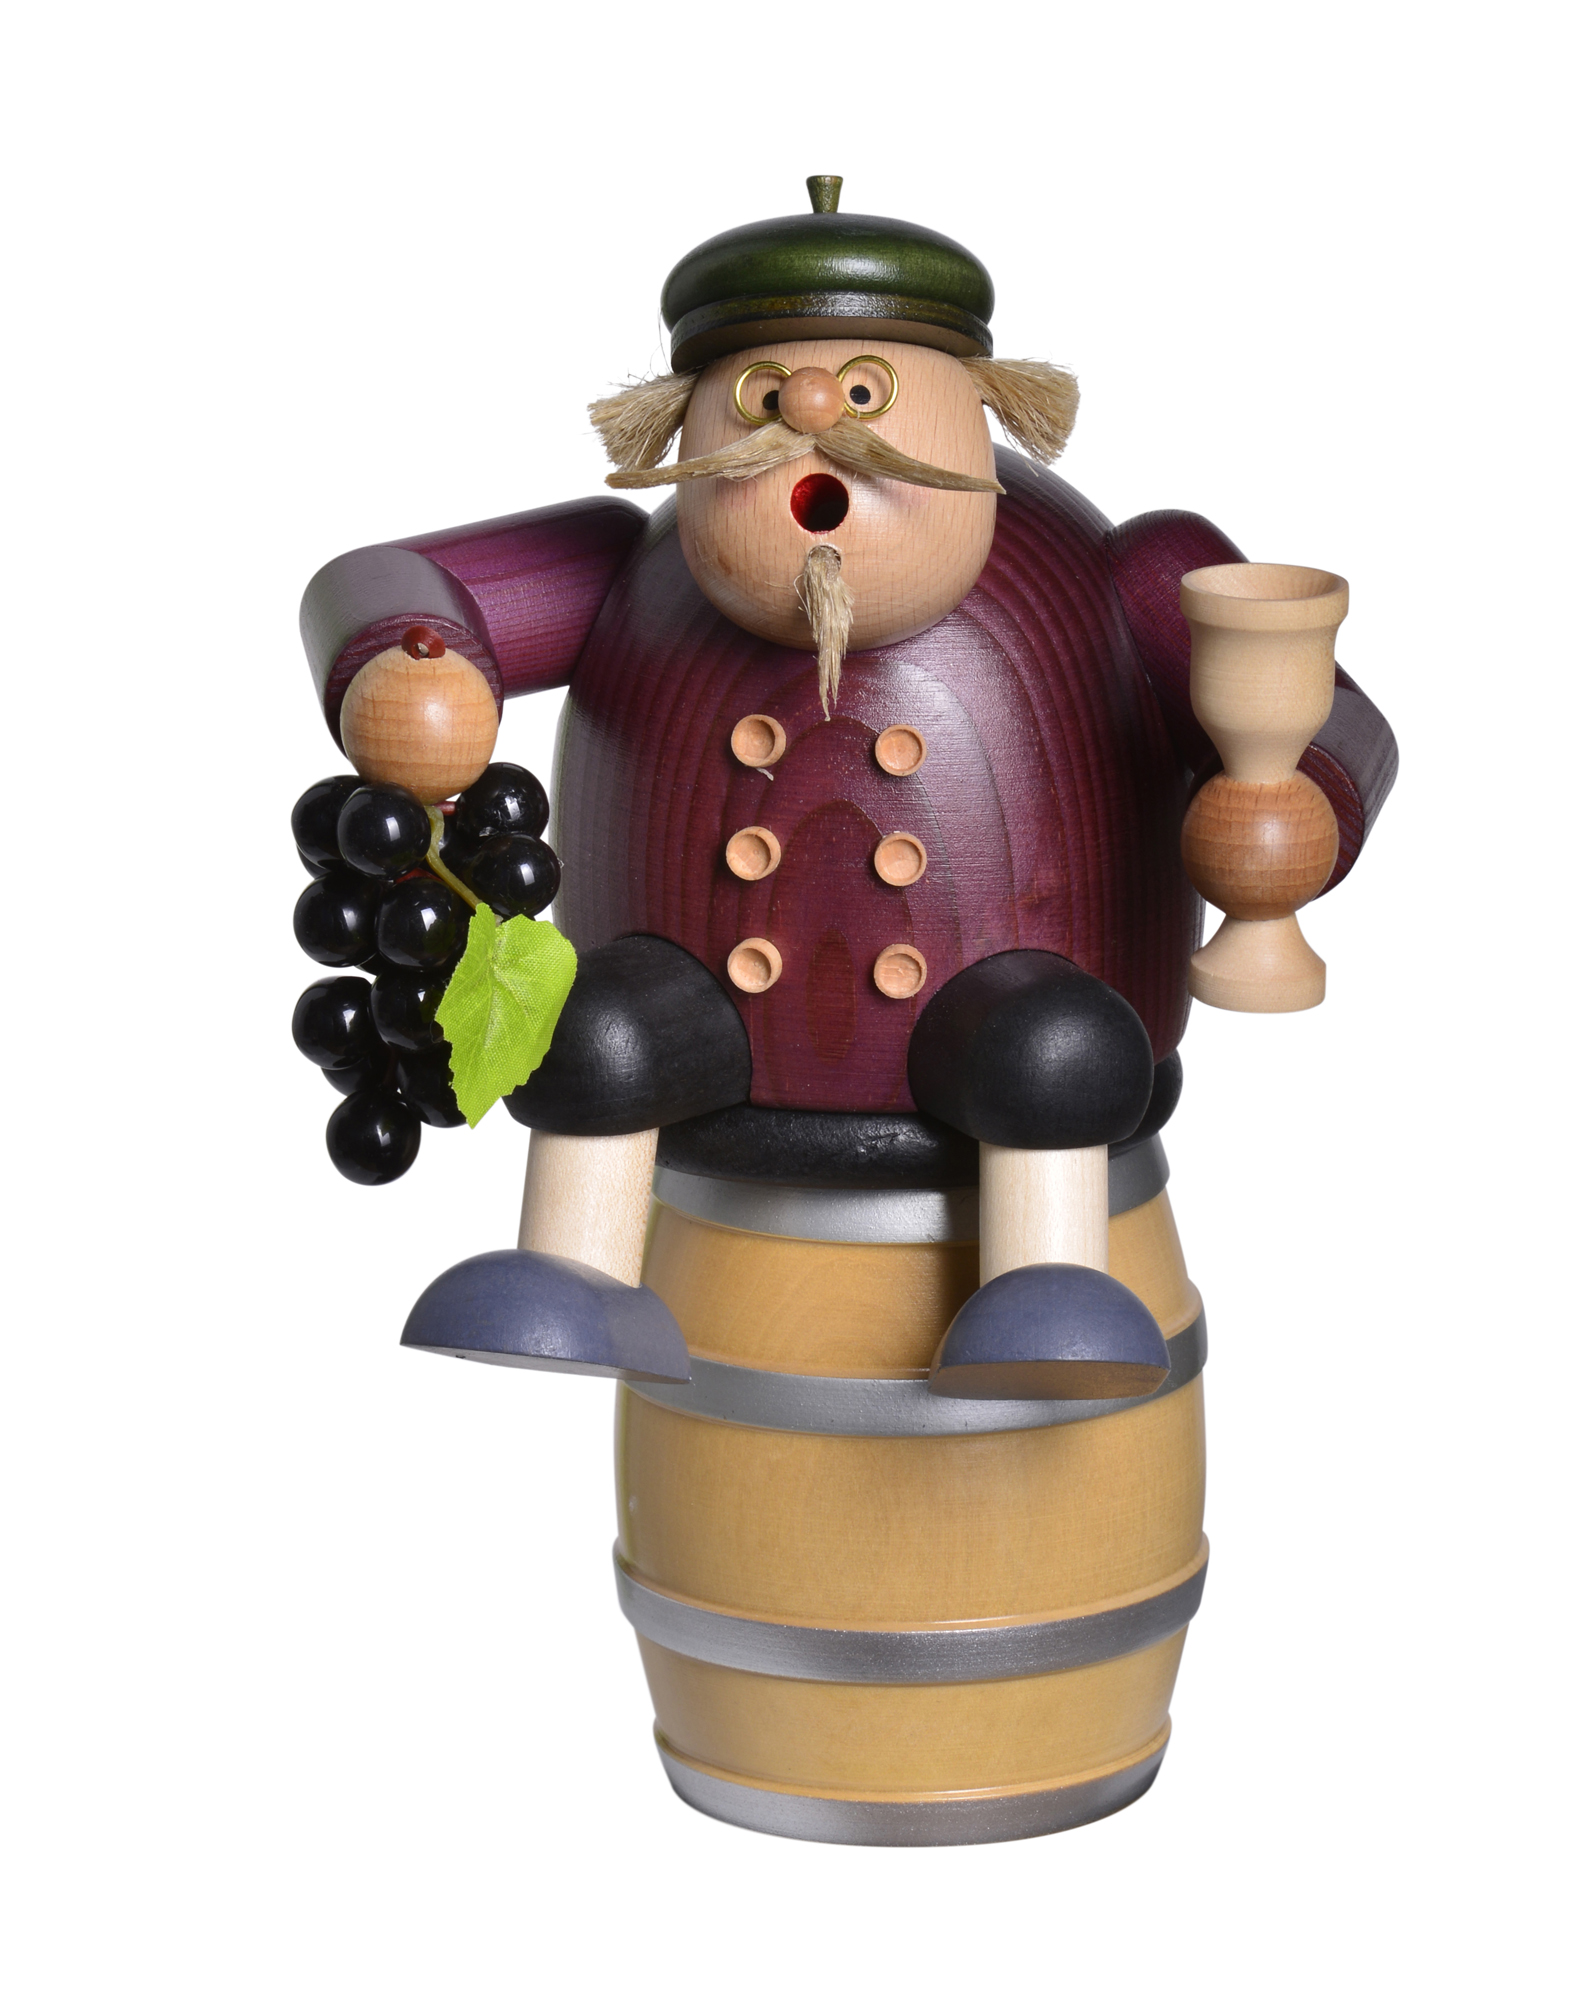 New Winemaker, Sitting on Barrel – 8.5″, including Barrel